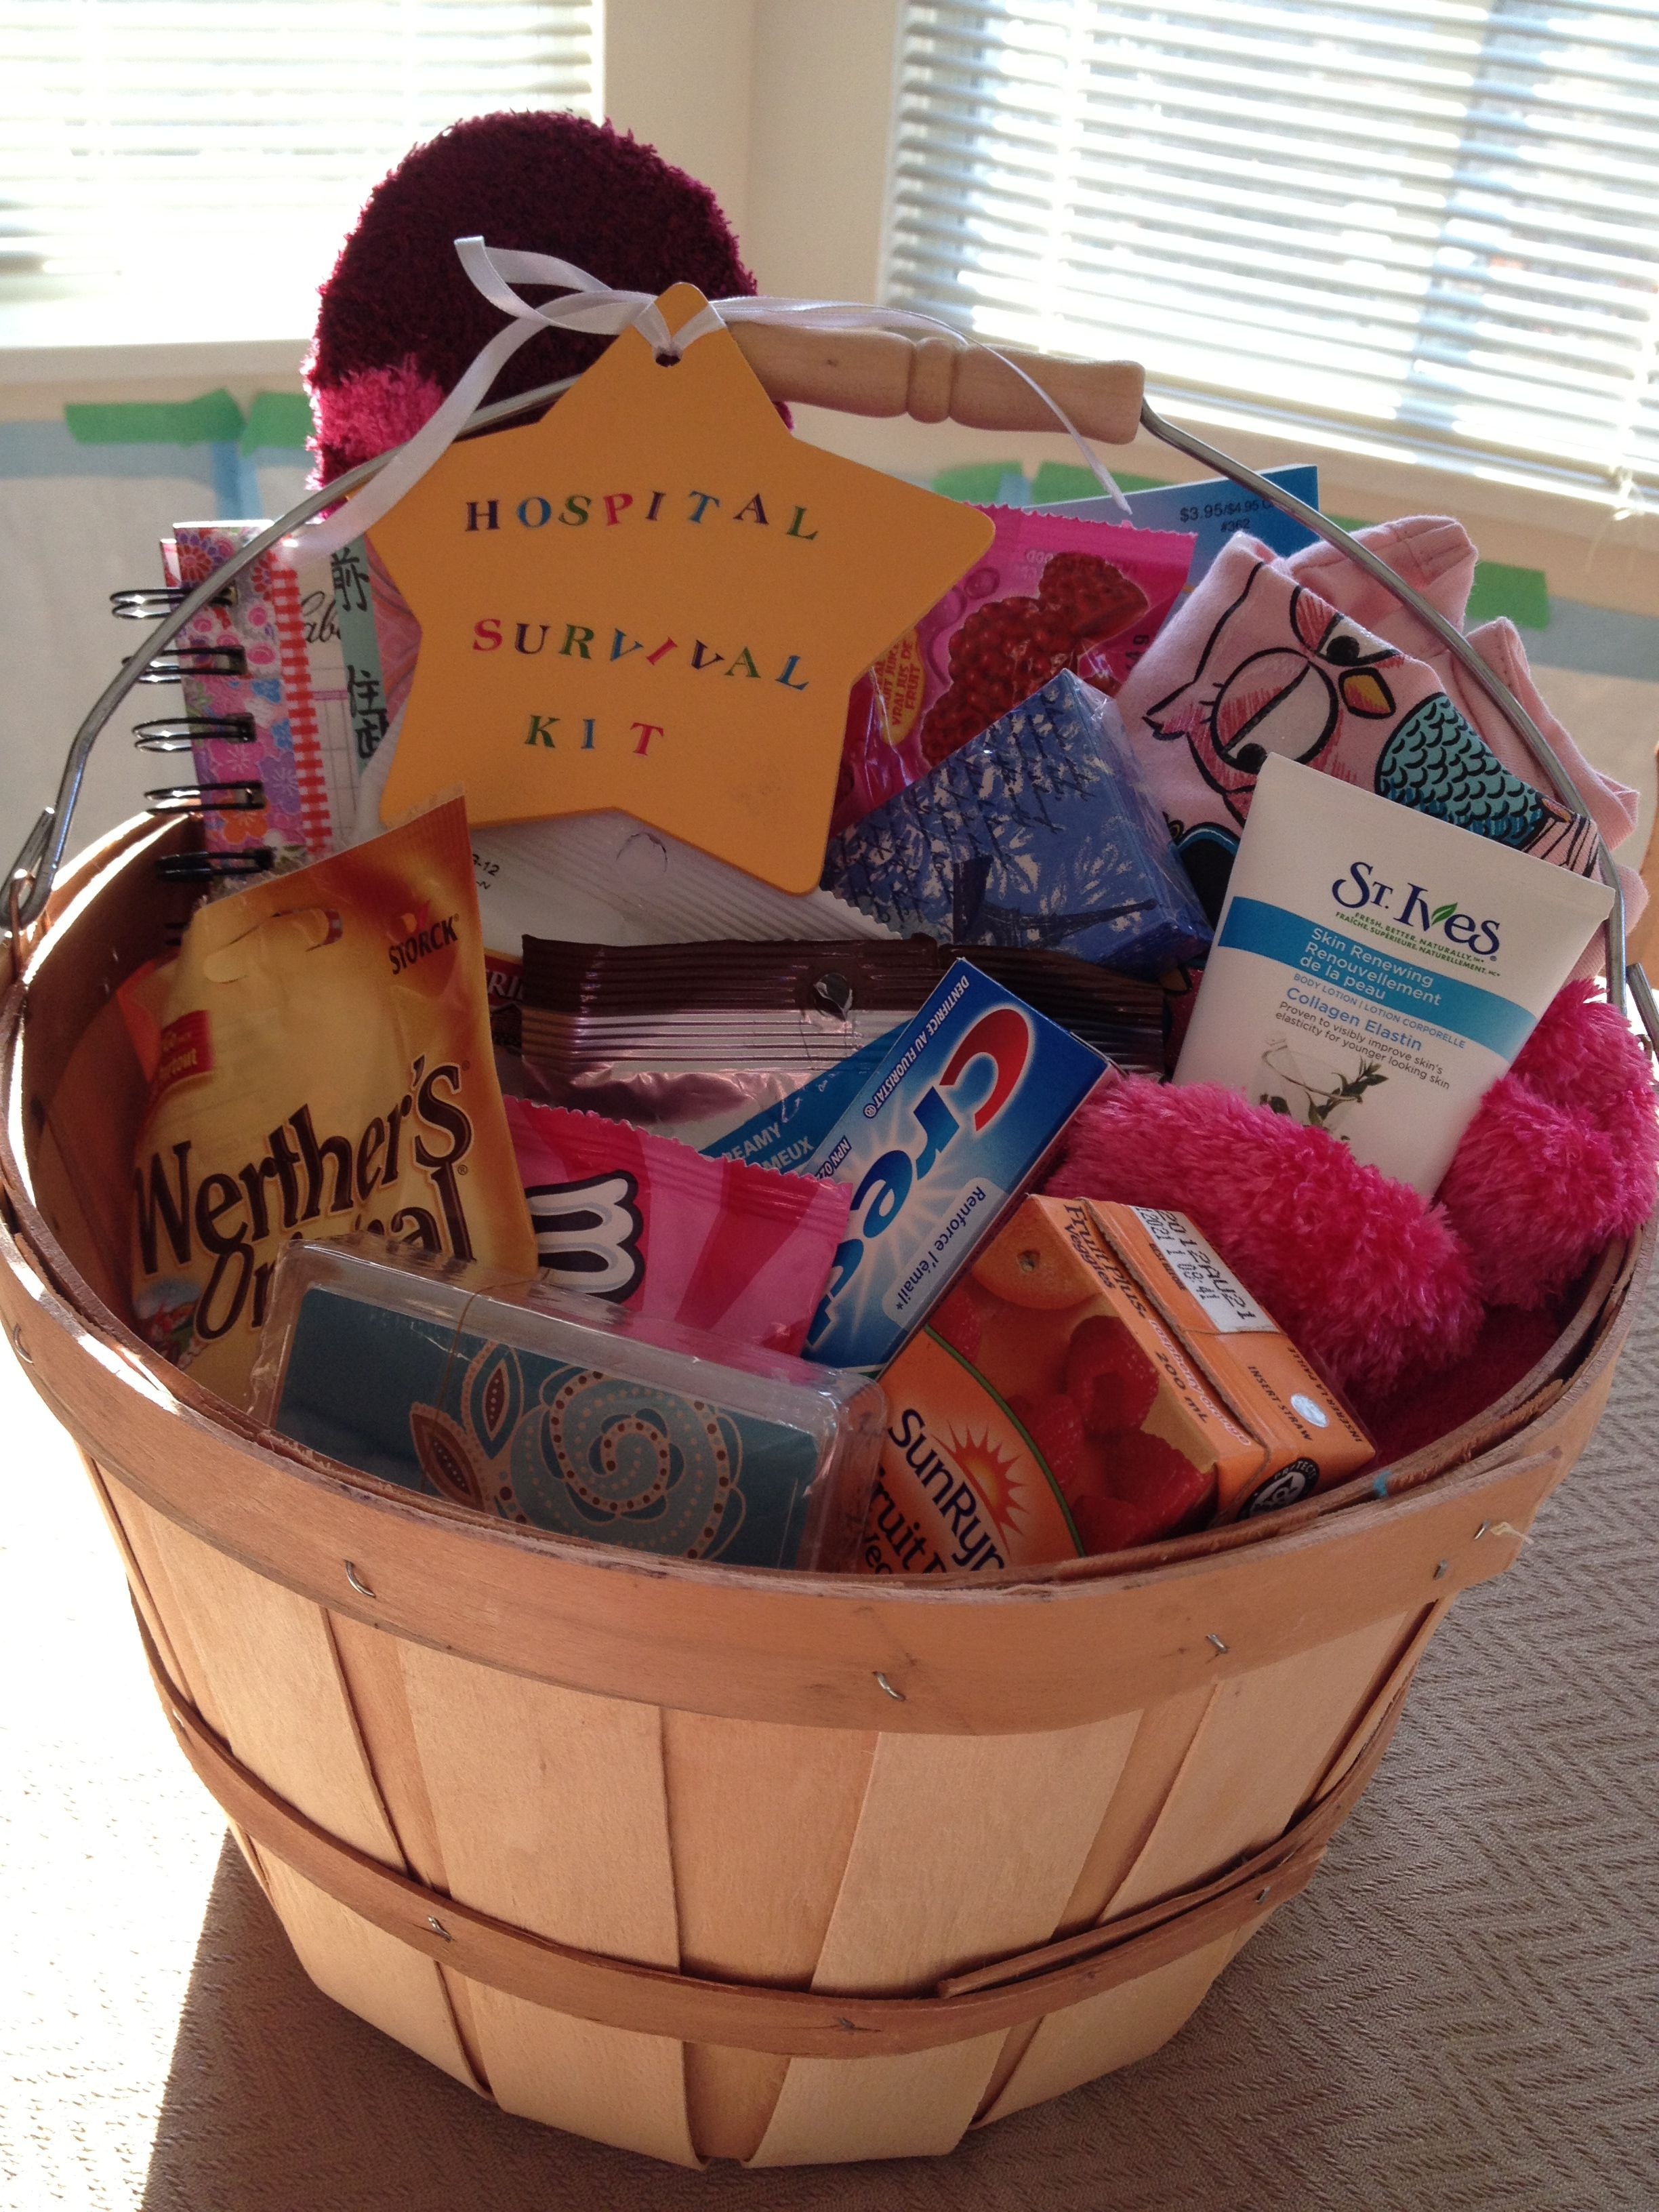 Housewarming Gift For Sister Hospital Survival Kit Gift Ideas N Such Pinterest